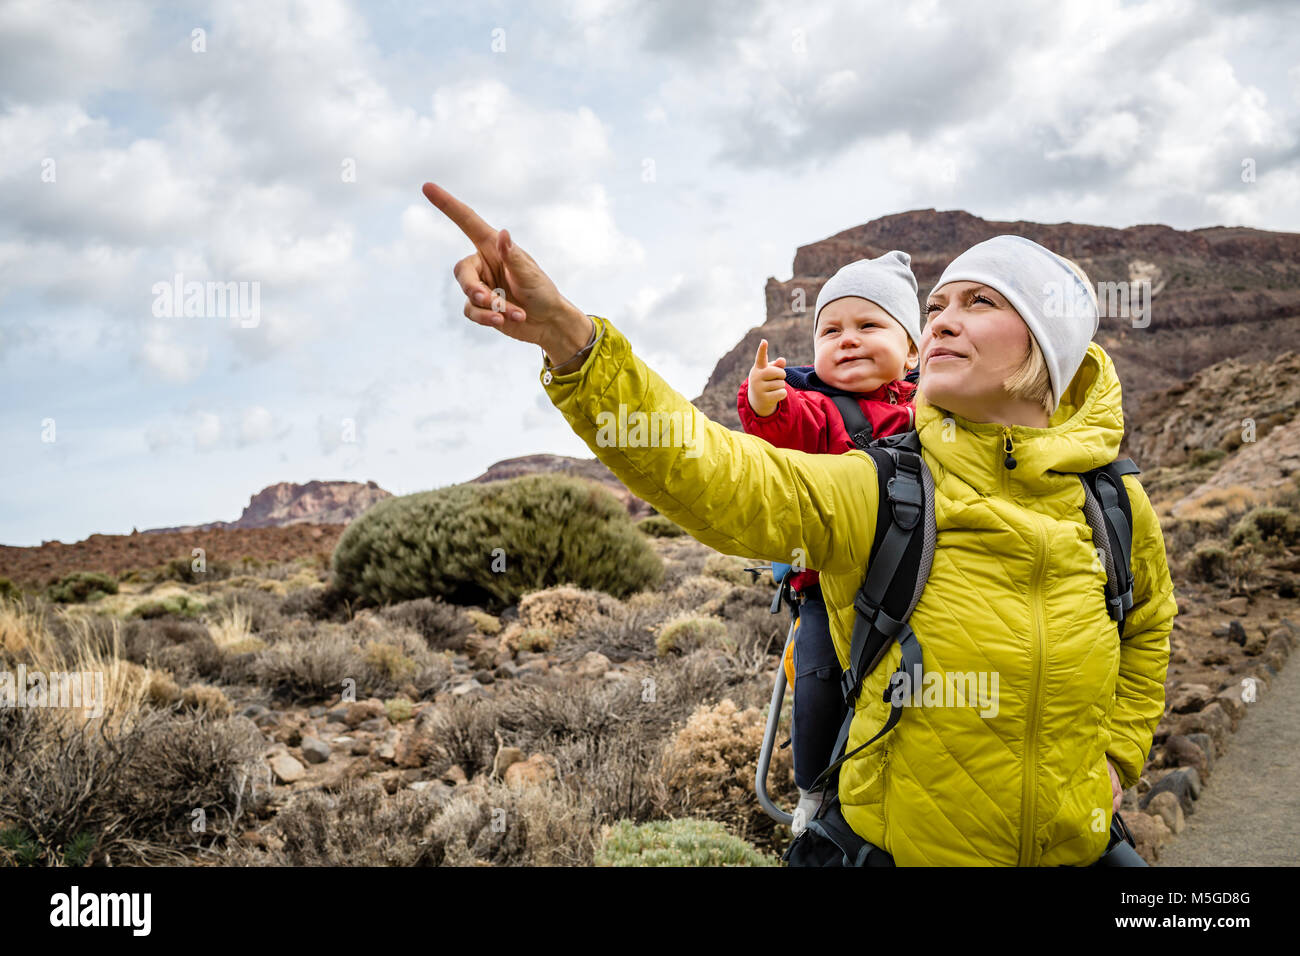 Super Baby Stock Photos Amp Super Baby Stock Images Alamy